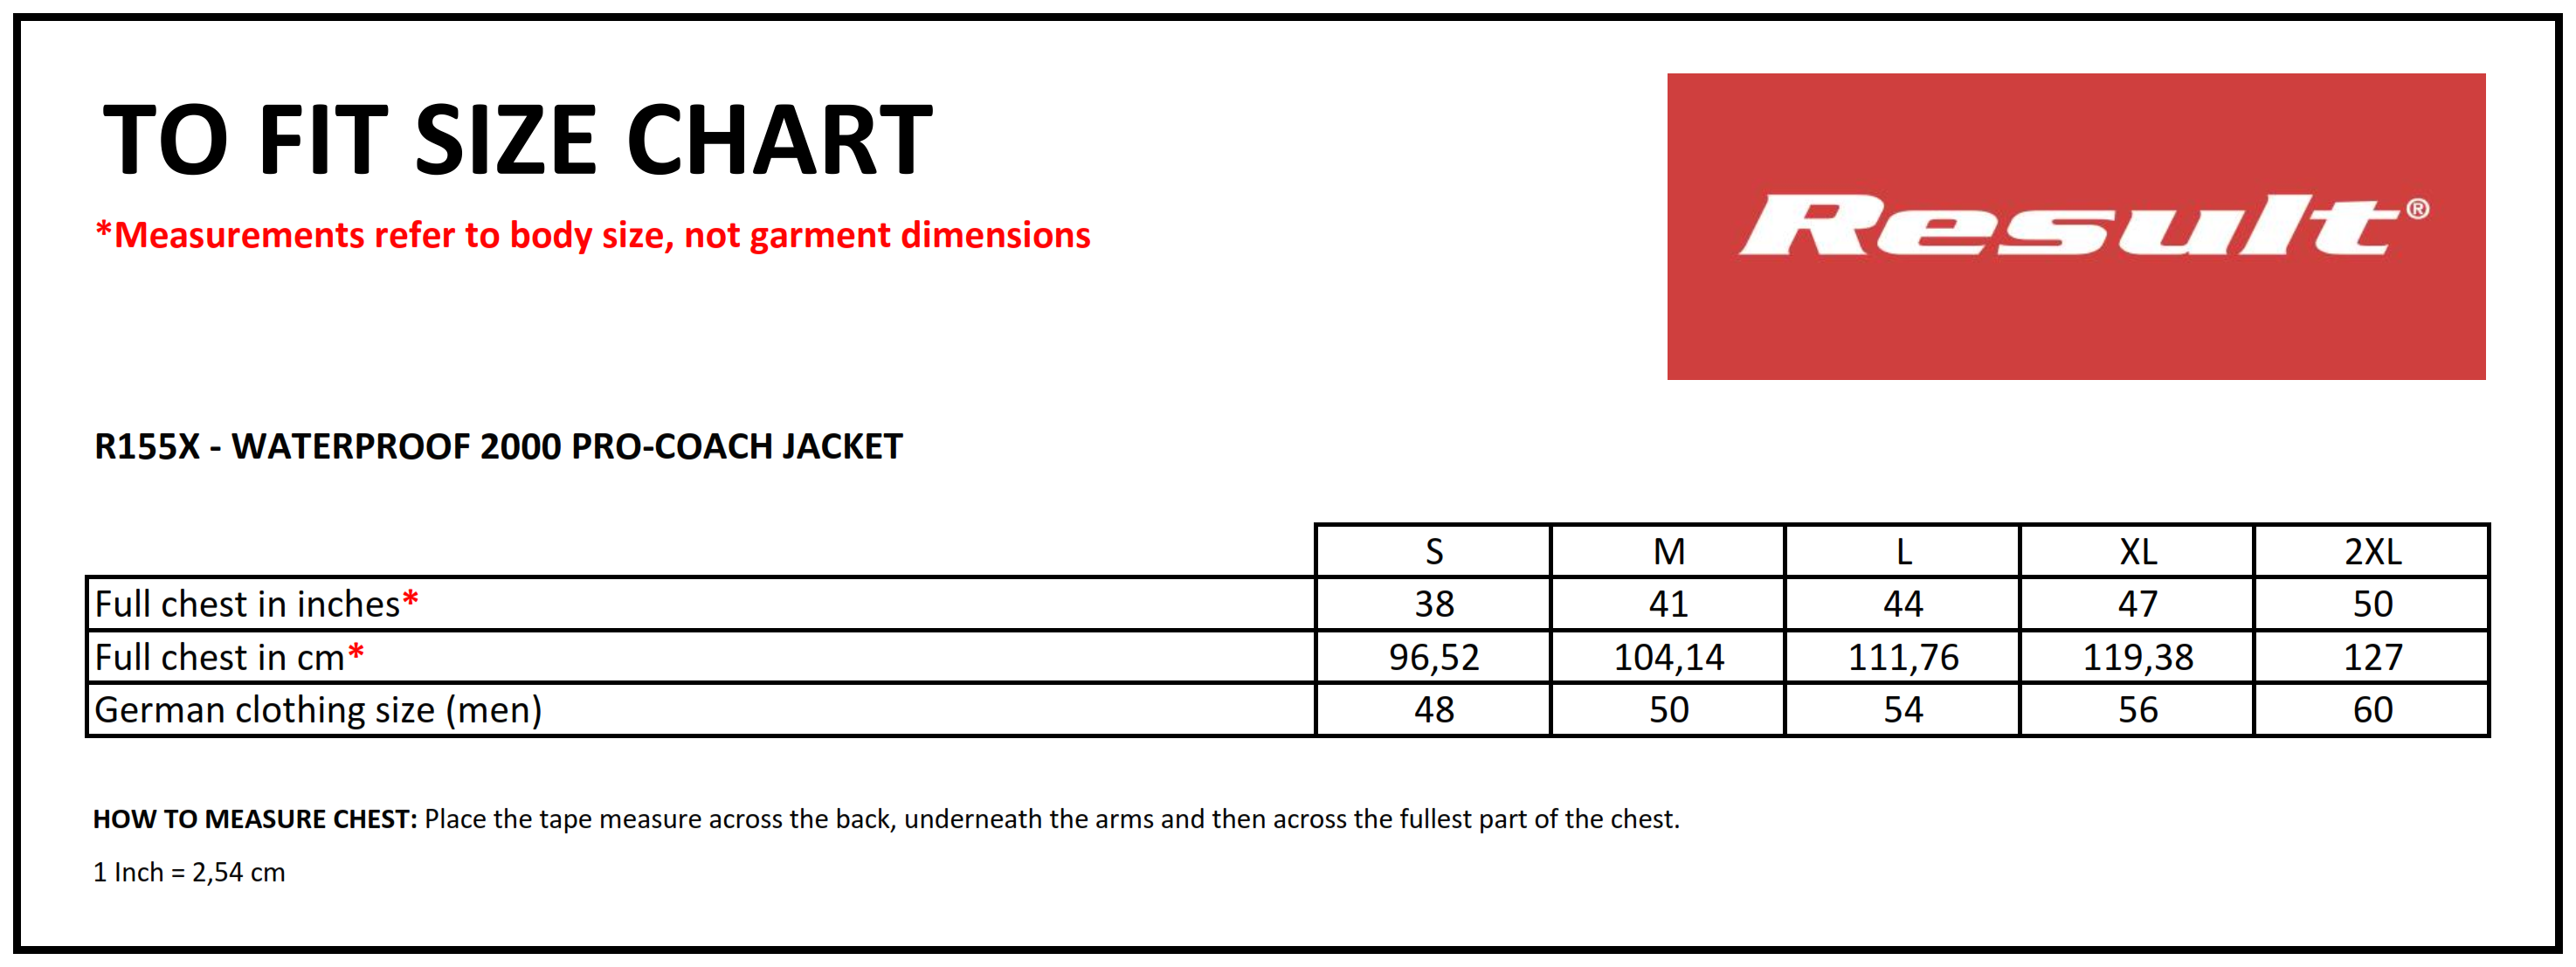 Result: Waterproof 2000 Pro-Coach Jacket R155X